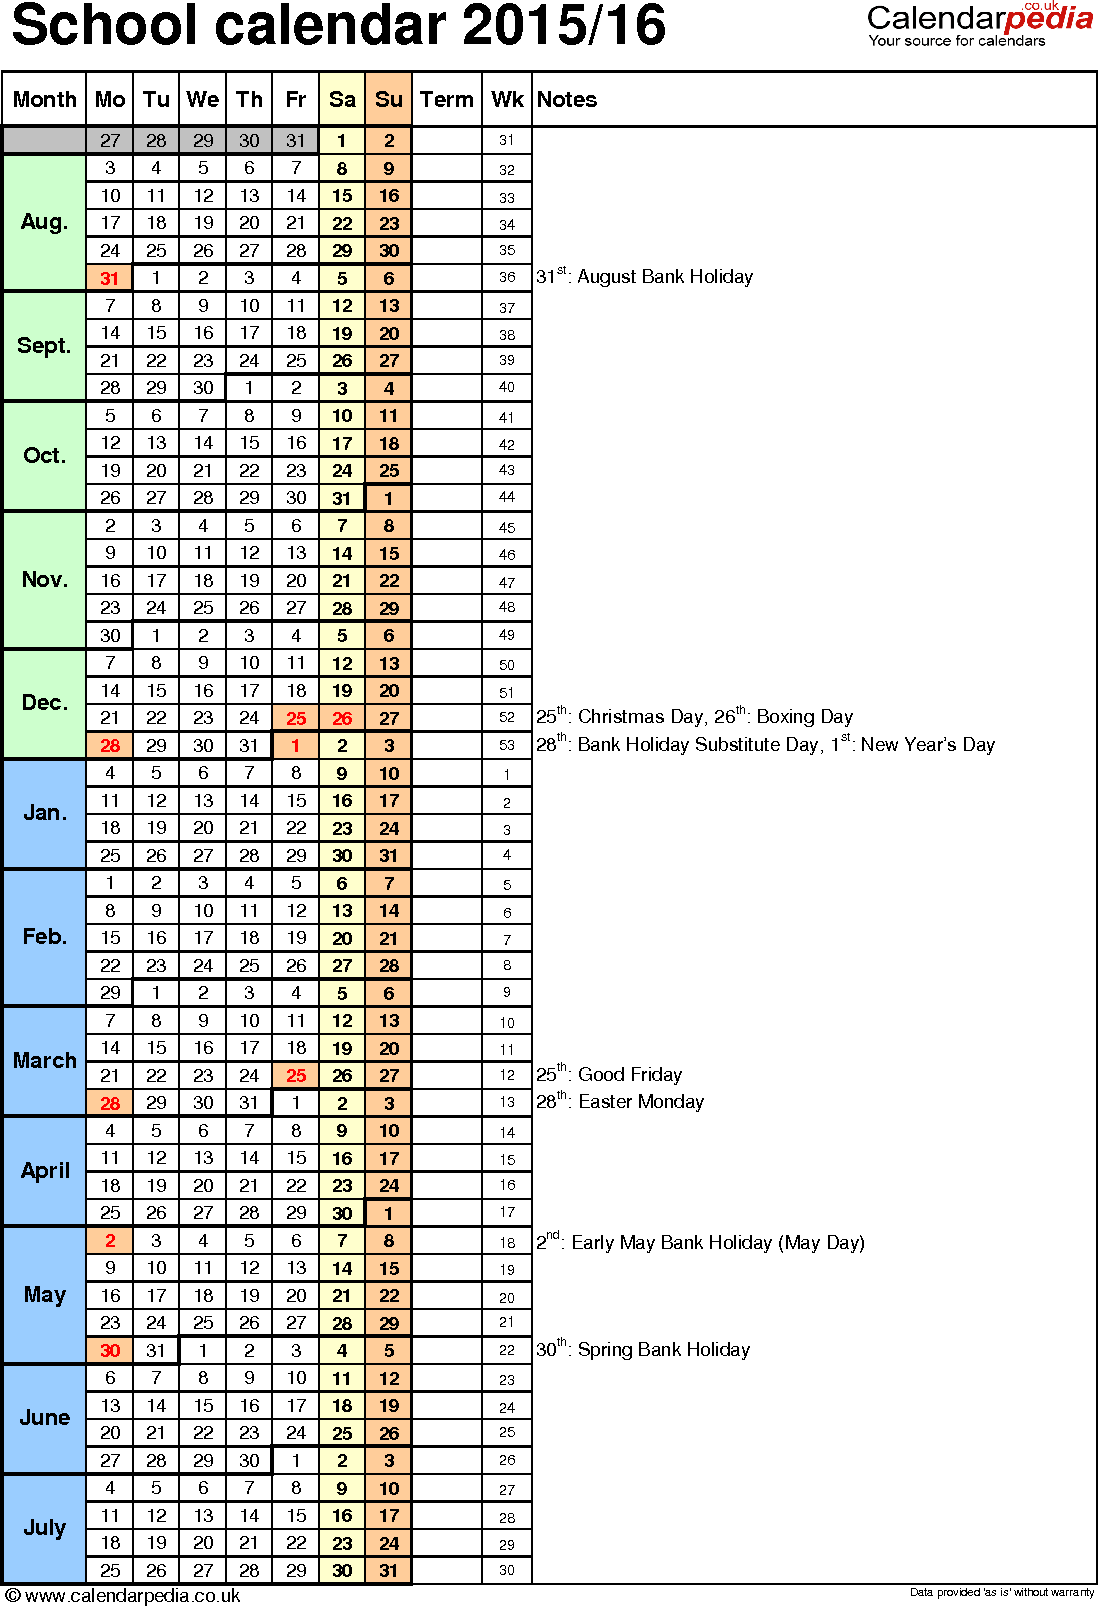 School calendars 2015/2016 as free printable Excel templates